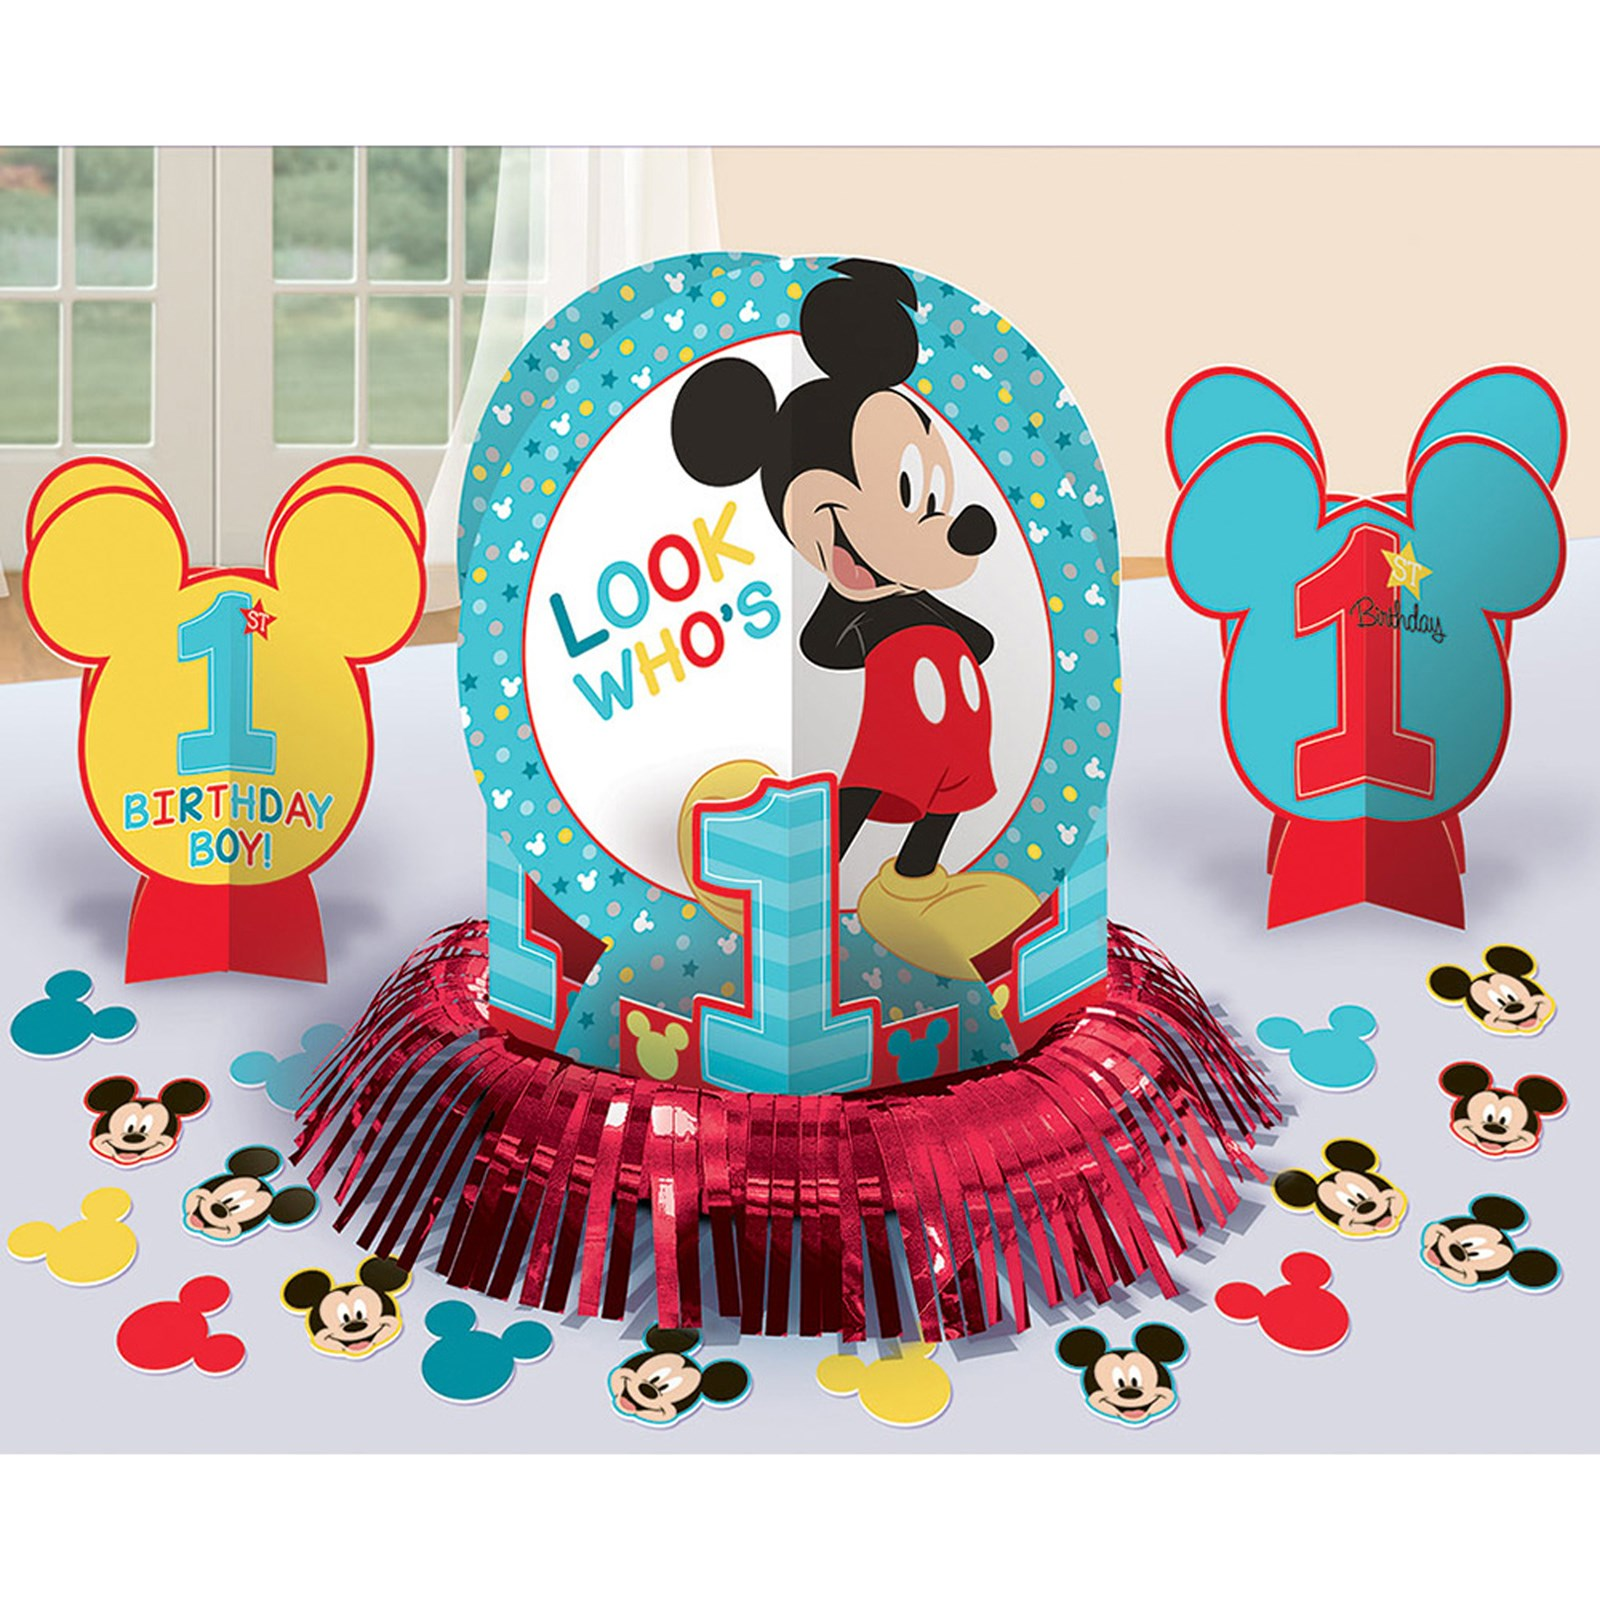 Disney Mickey Mouse 1st Birthday Decoration Kit